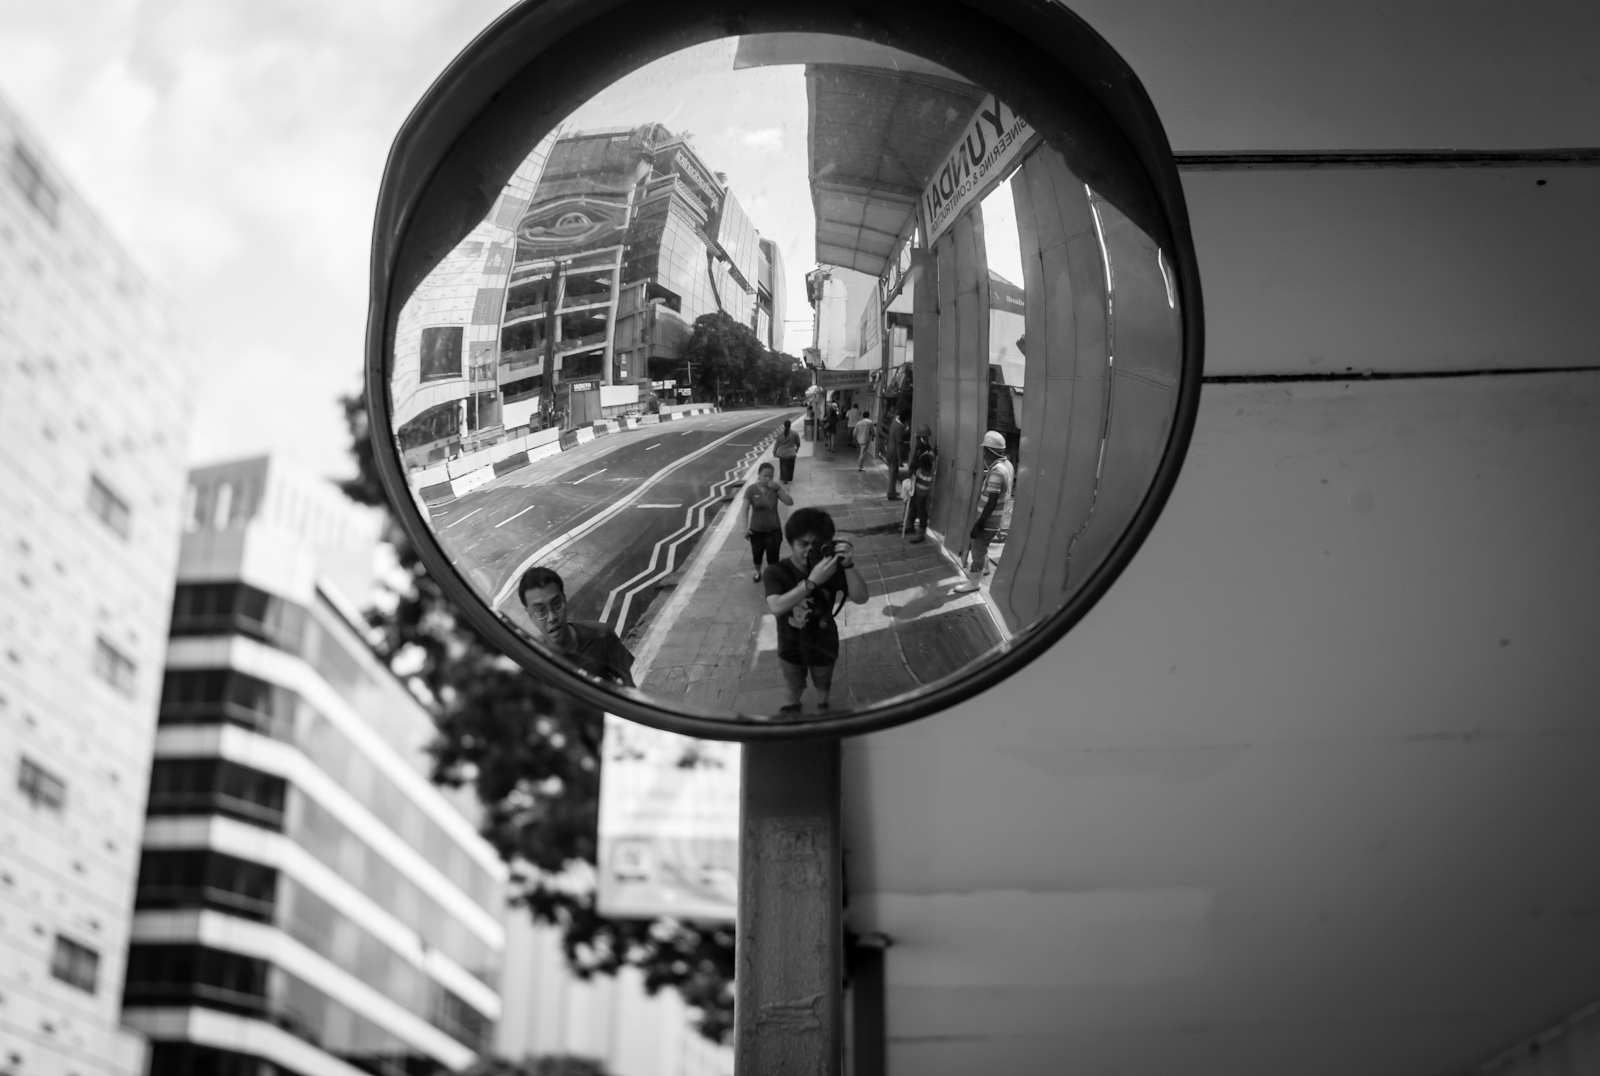 Street photography - Photo of myself in the mirror